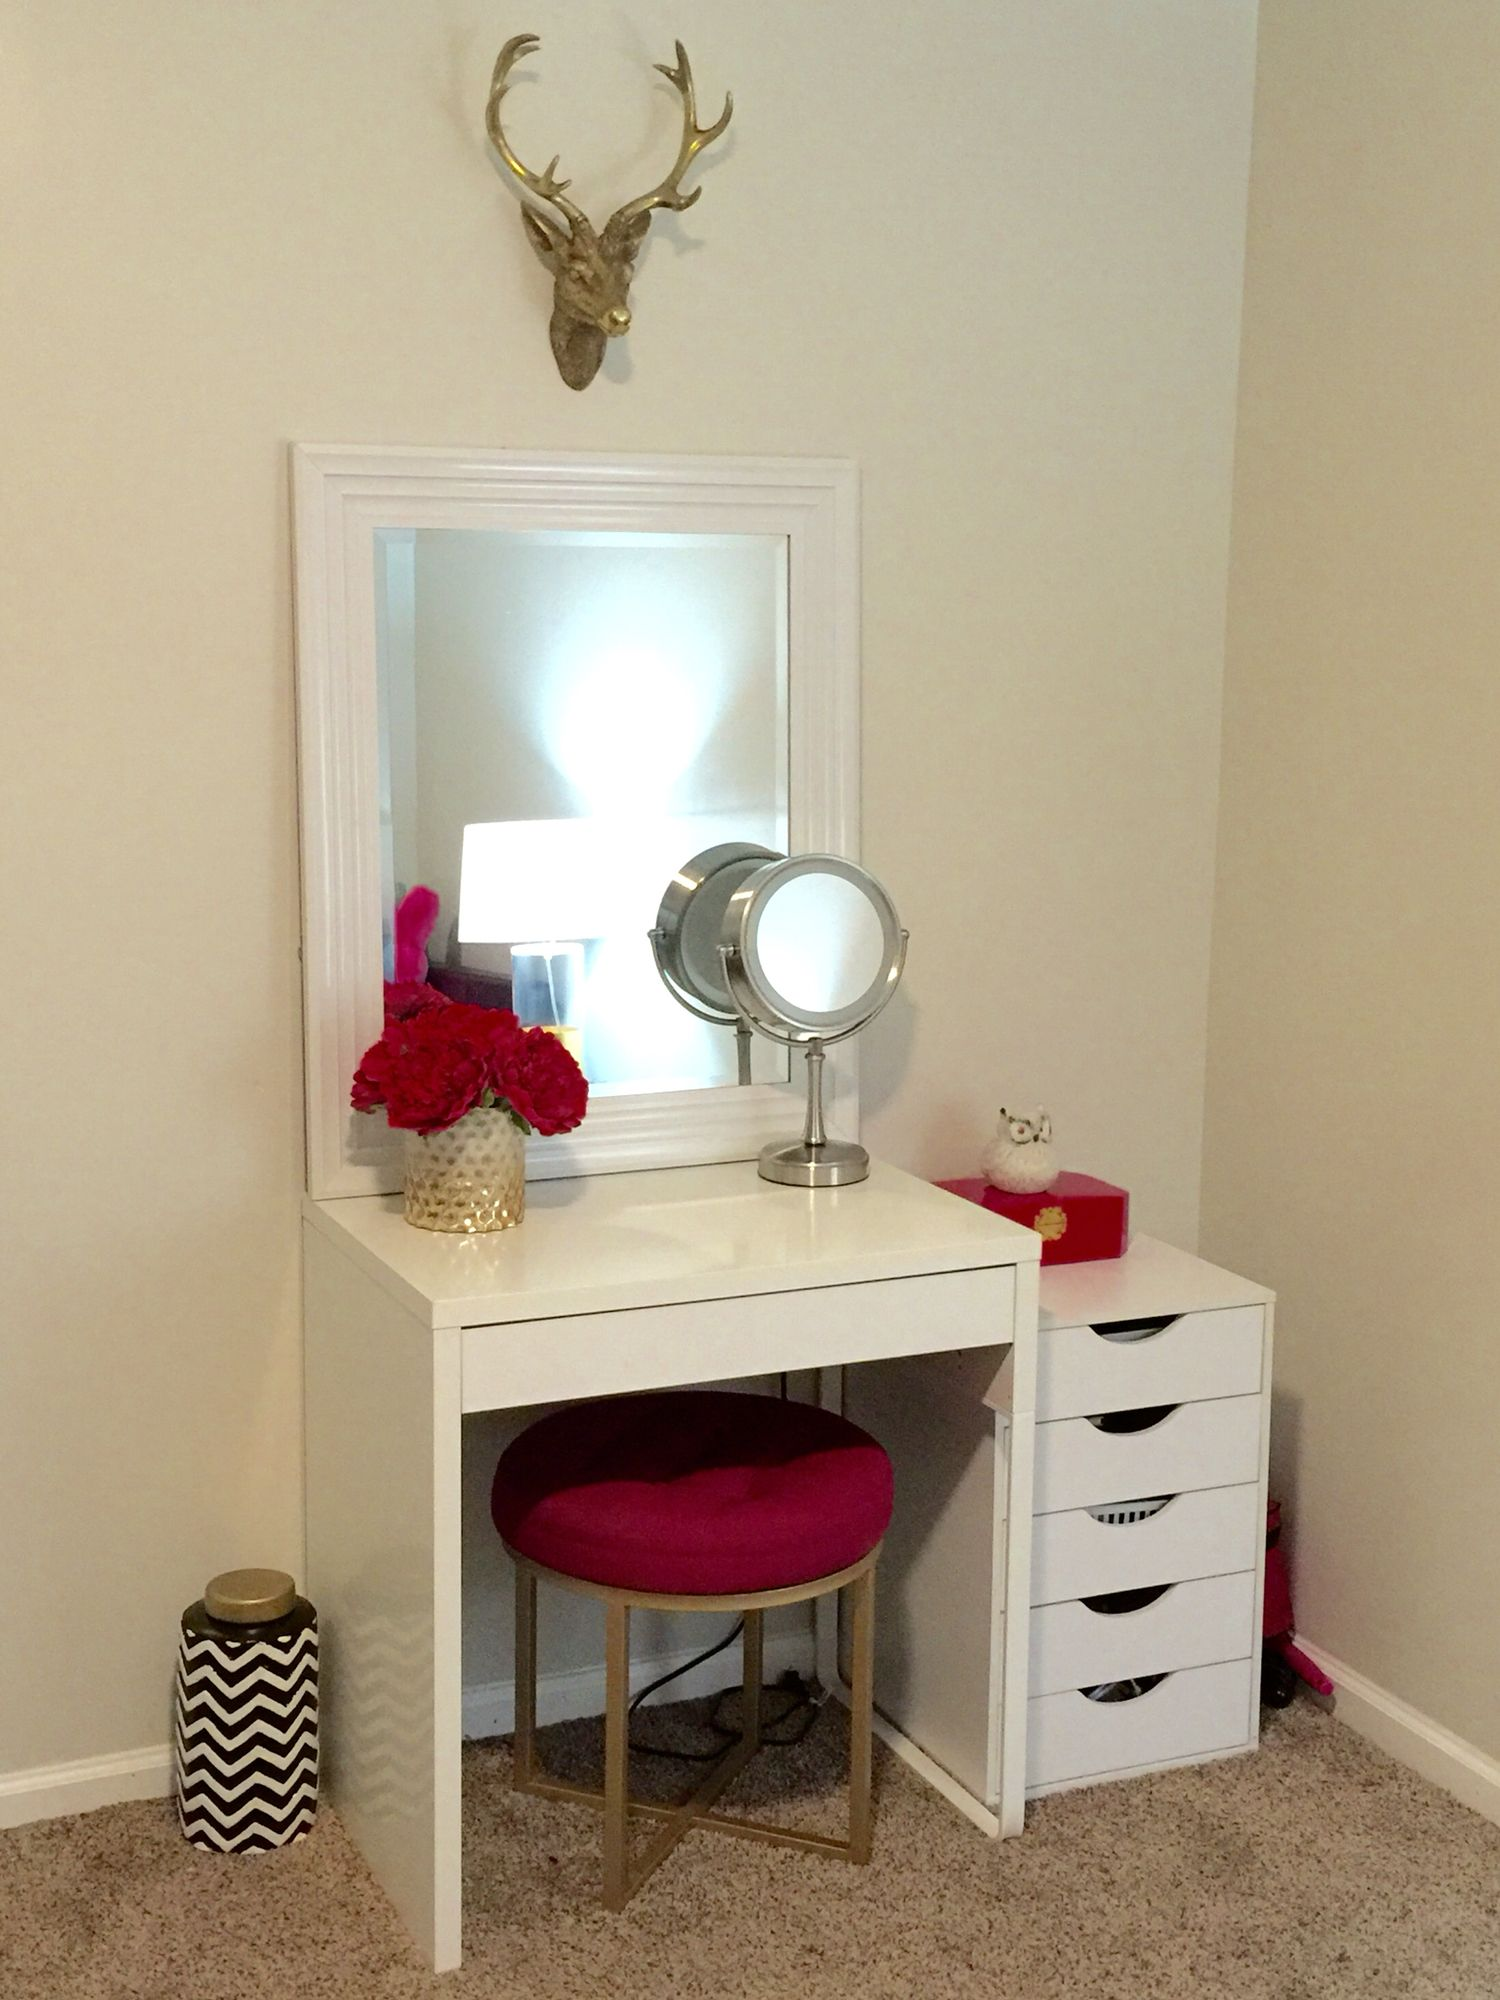 Makeup Vanity Ikea Micke Desk Target Threshold Pink Ottoman. 22 Small Dressing Area Ideas Bringing New Sensations into Interior